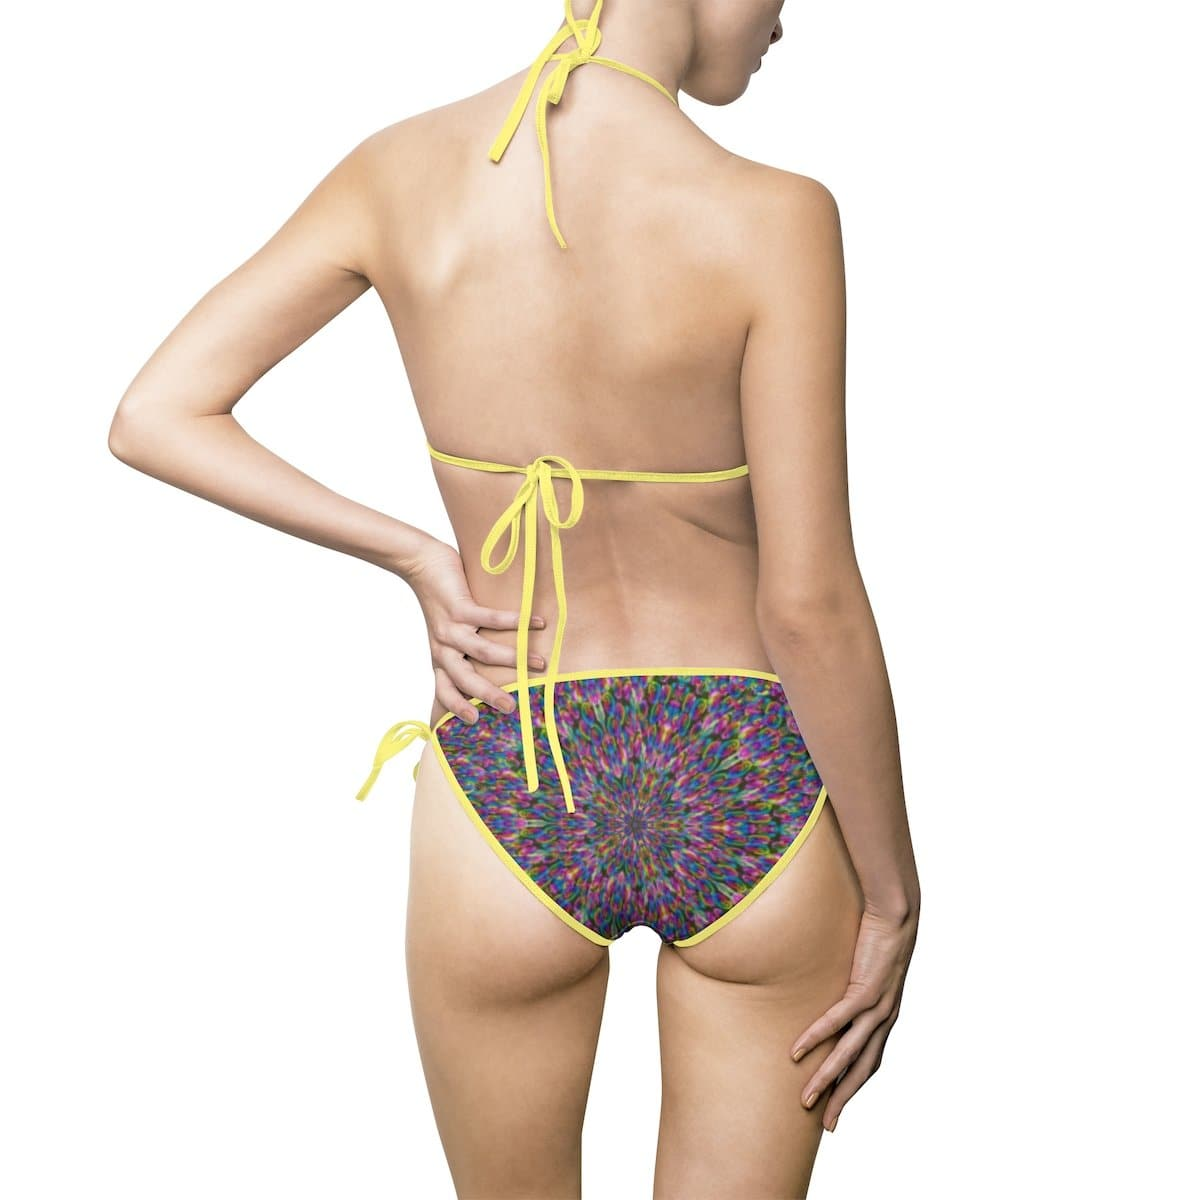 Psygyro Women's Bikini Swimsuit Volutpuous (+) Size Available - TFC&H Co.